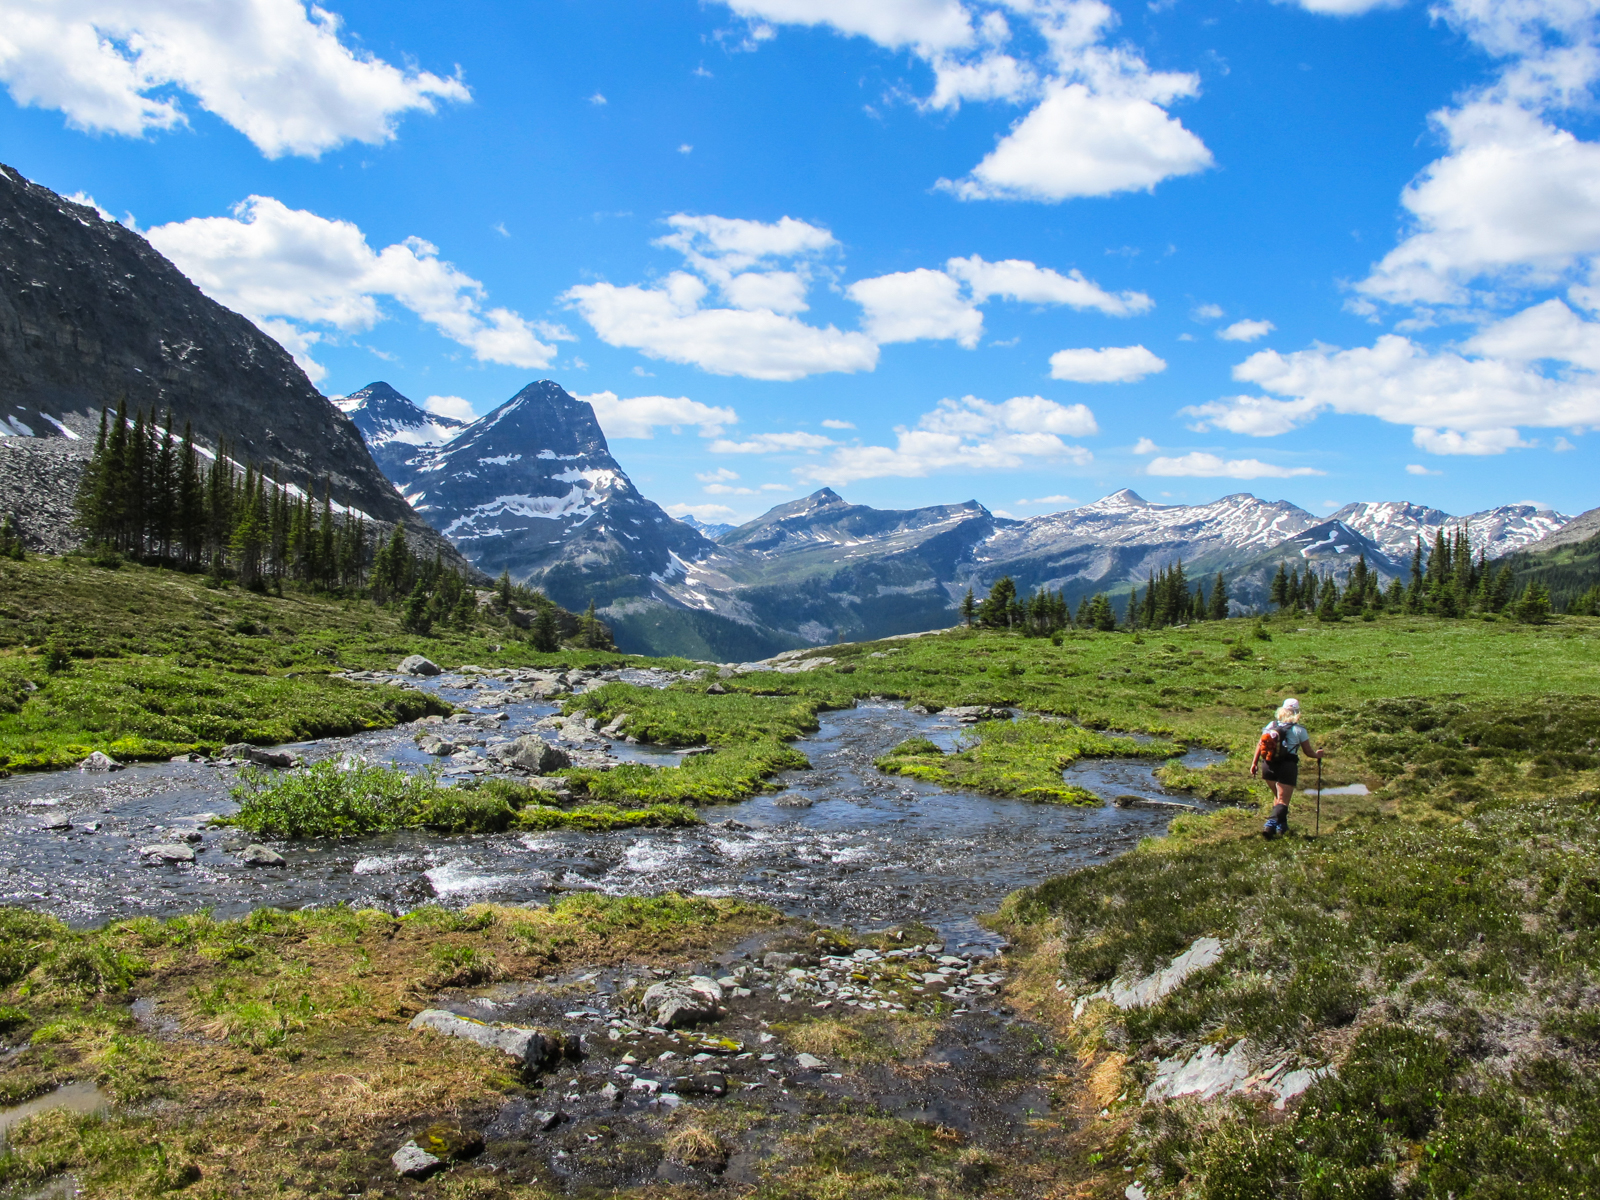 Lone hiker in a grassy meadow with a stream in the mountains